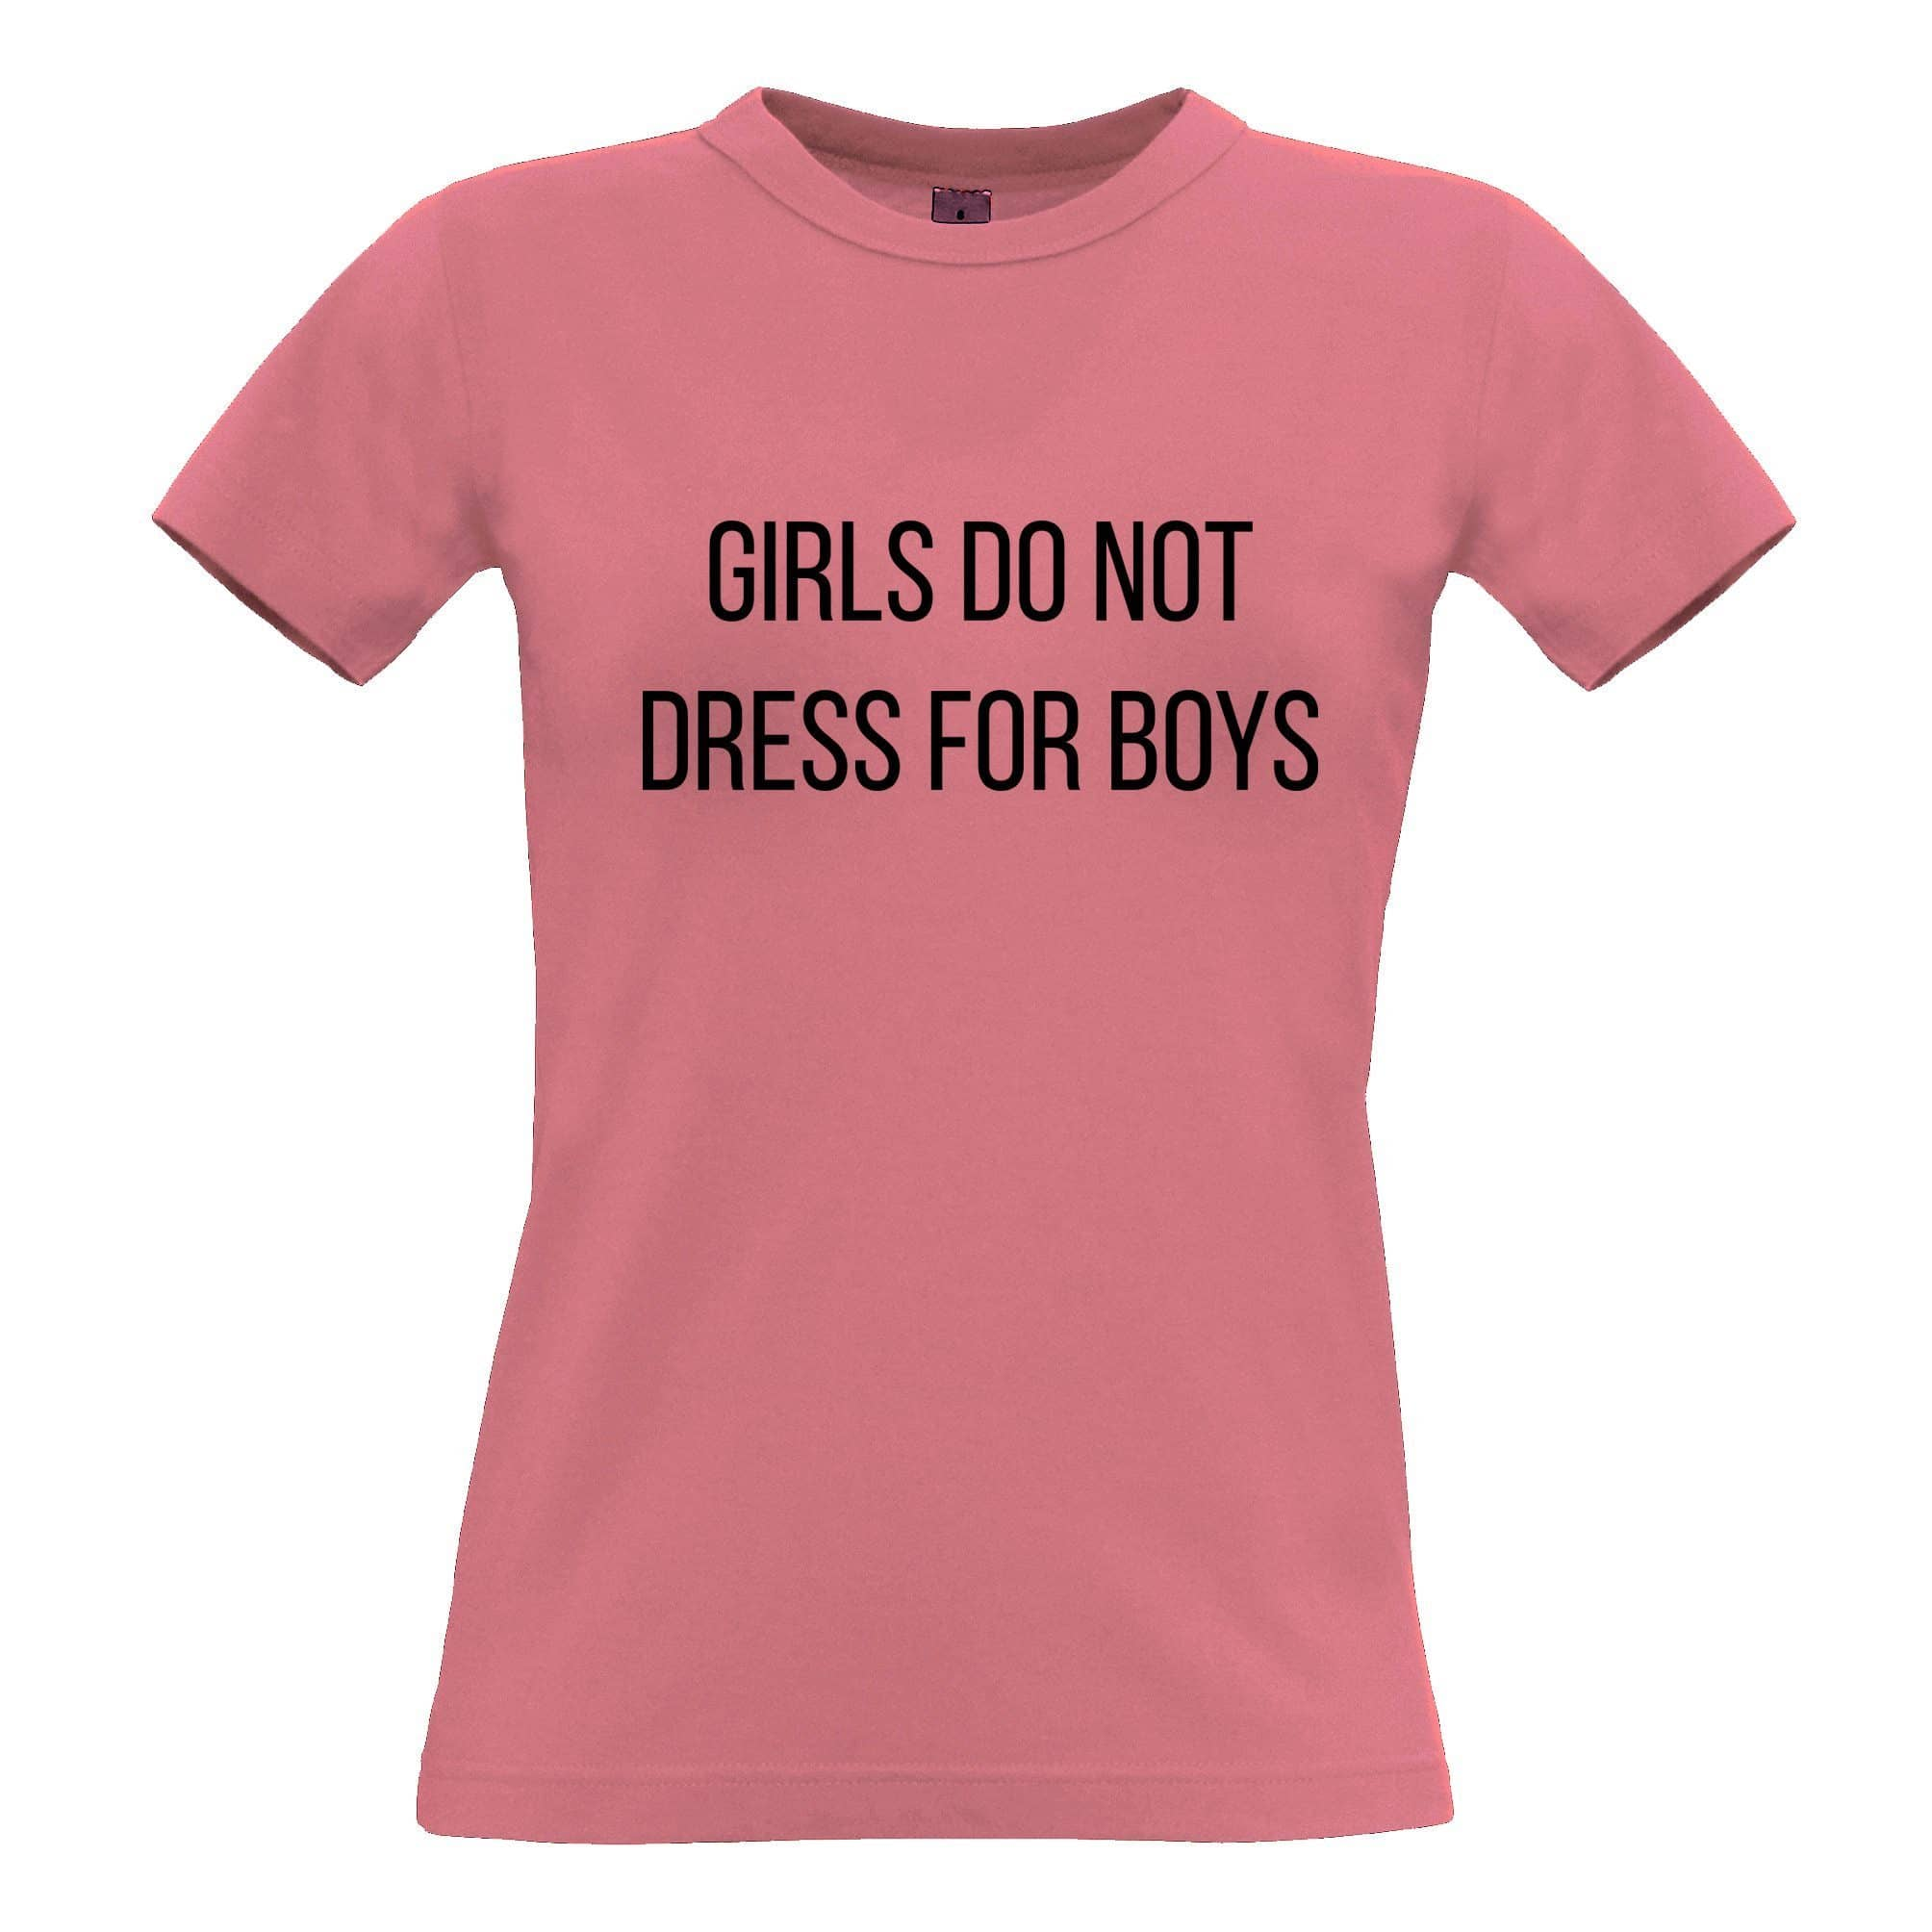 Feminist Womens T Shirt Girls Do Not Dress For Boys Slogan